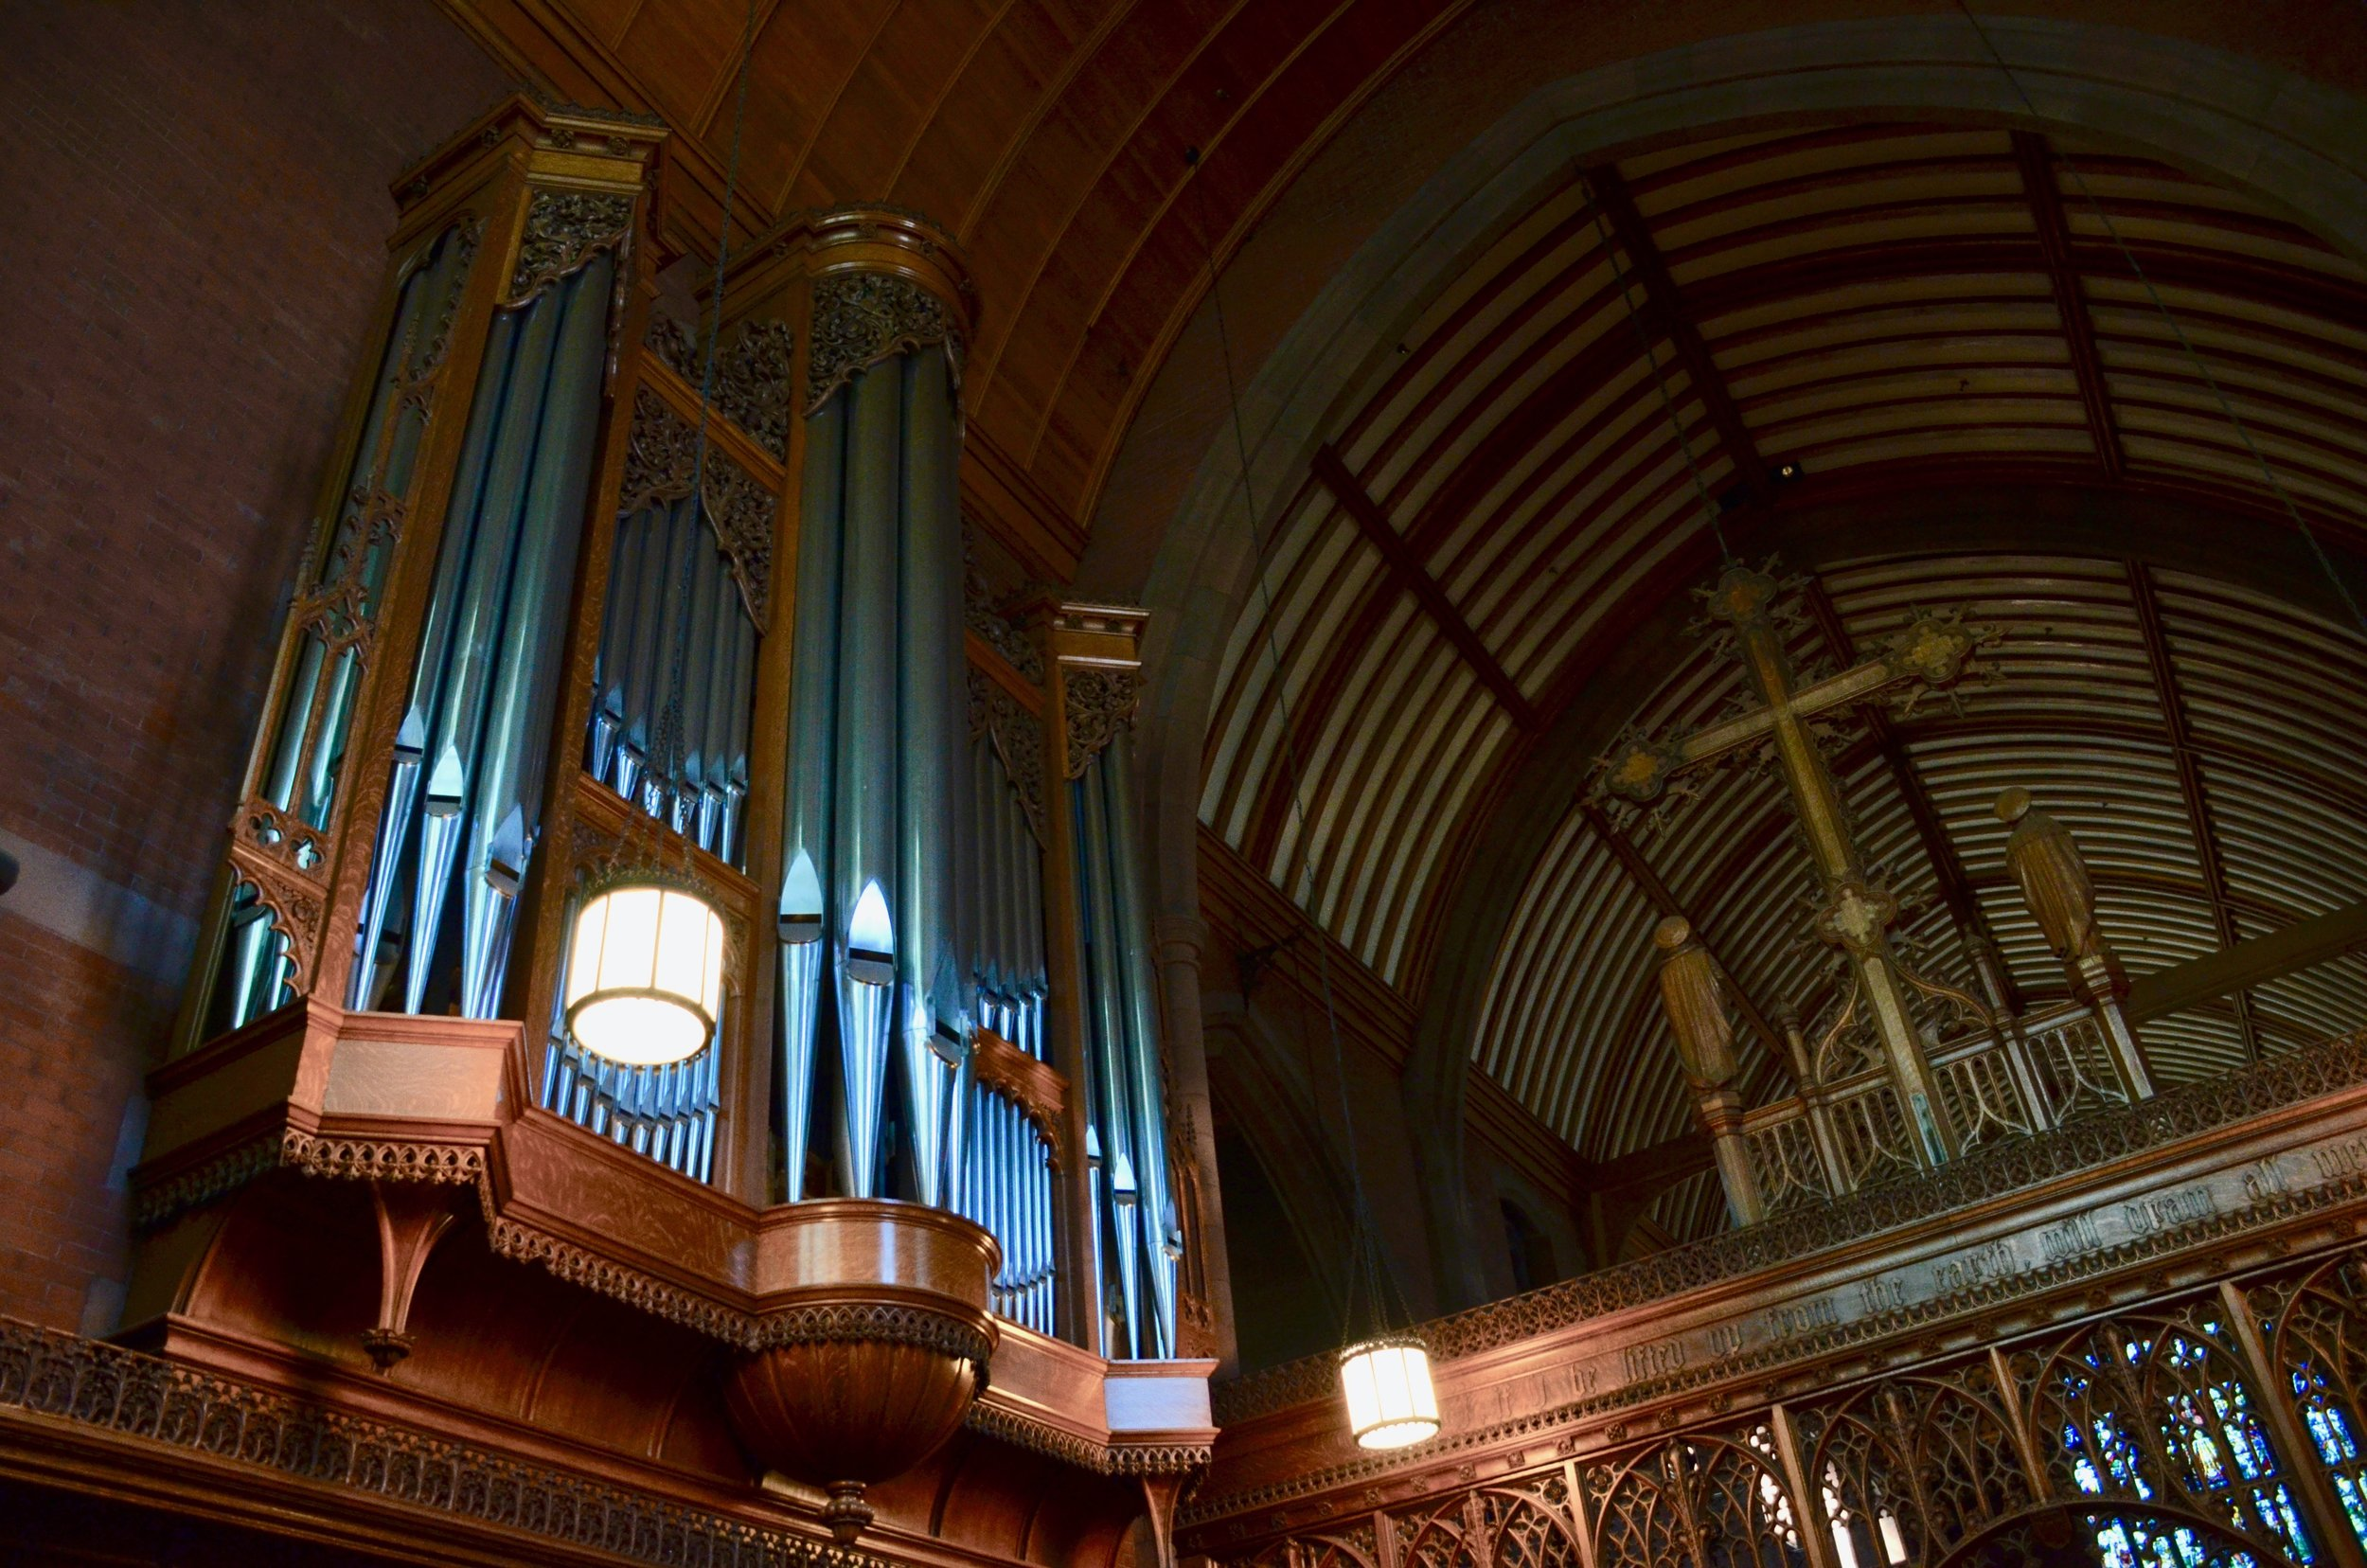 The Lively-Fulcher organ in Christ Church New Haven